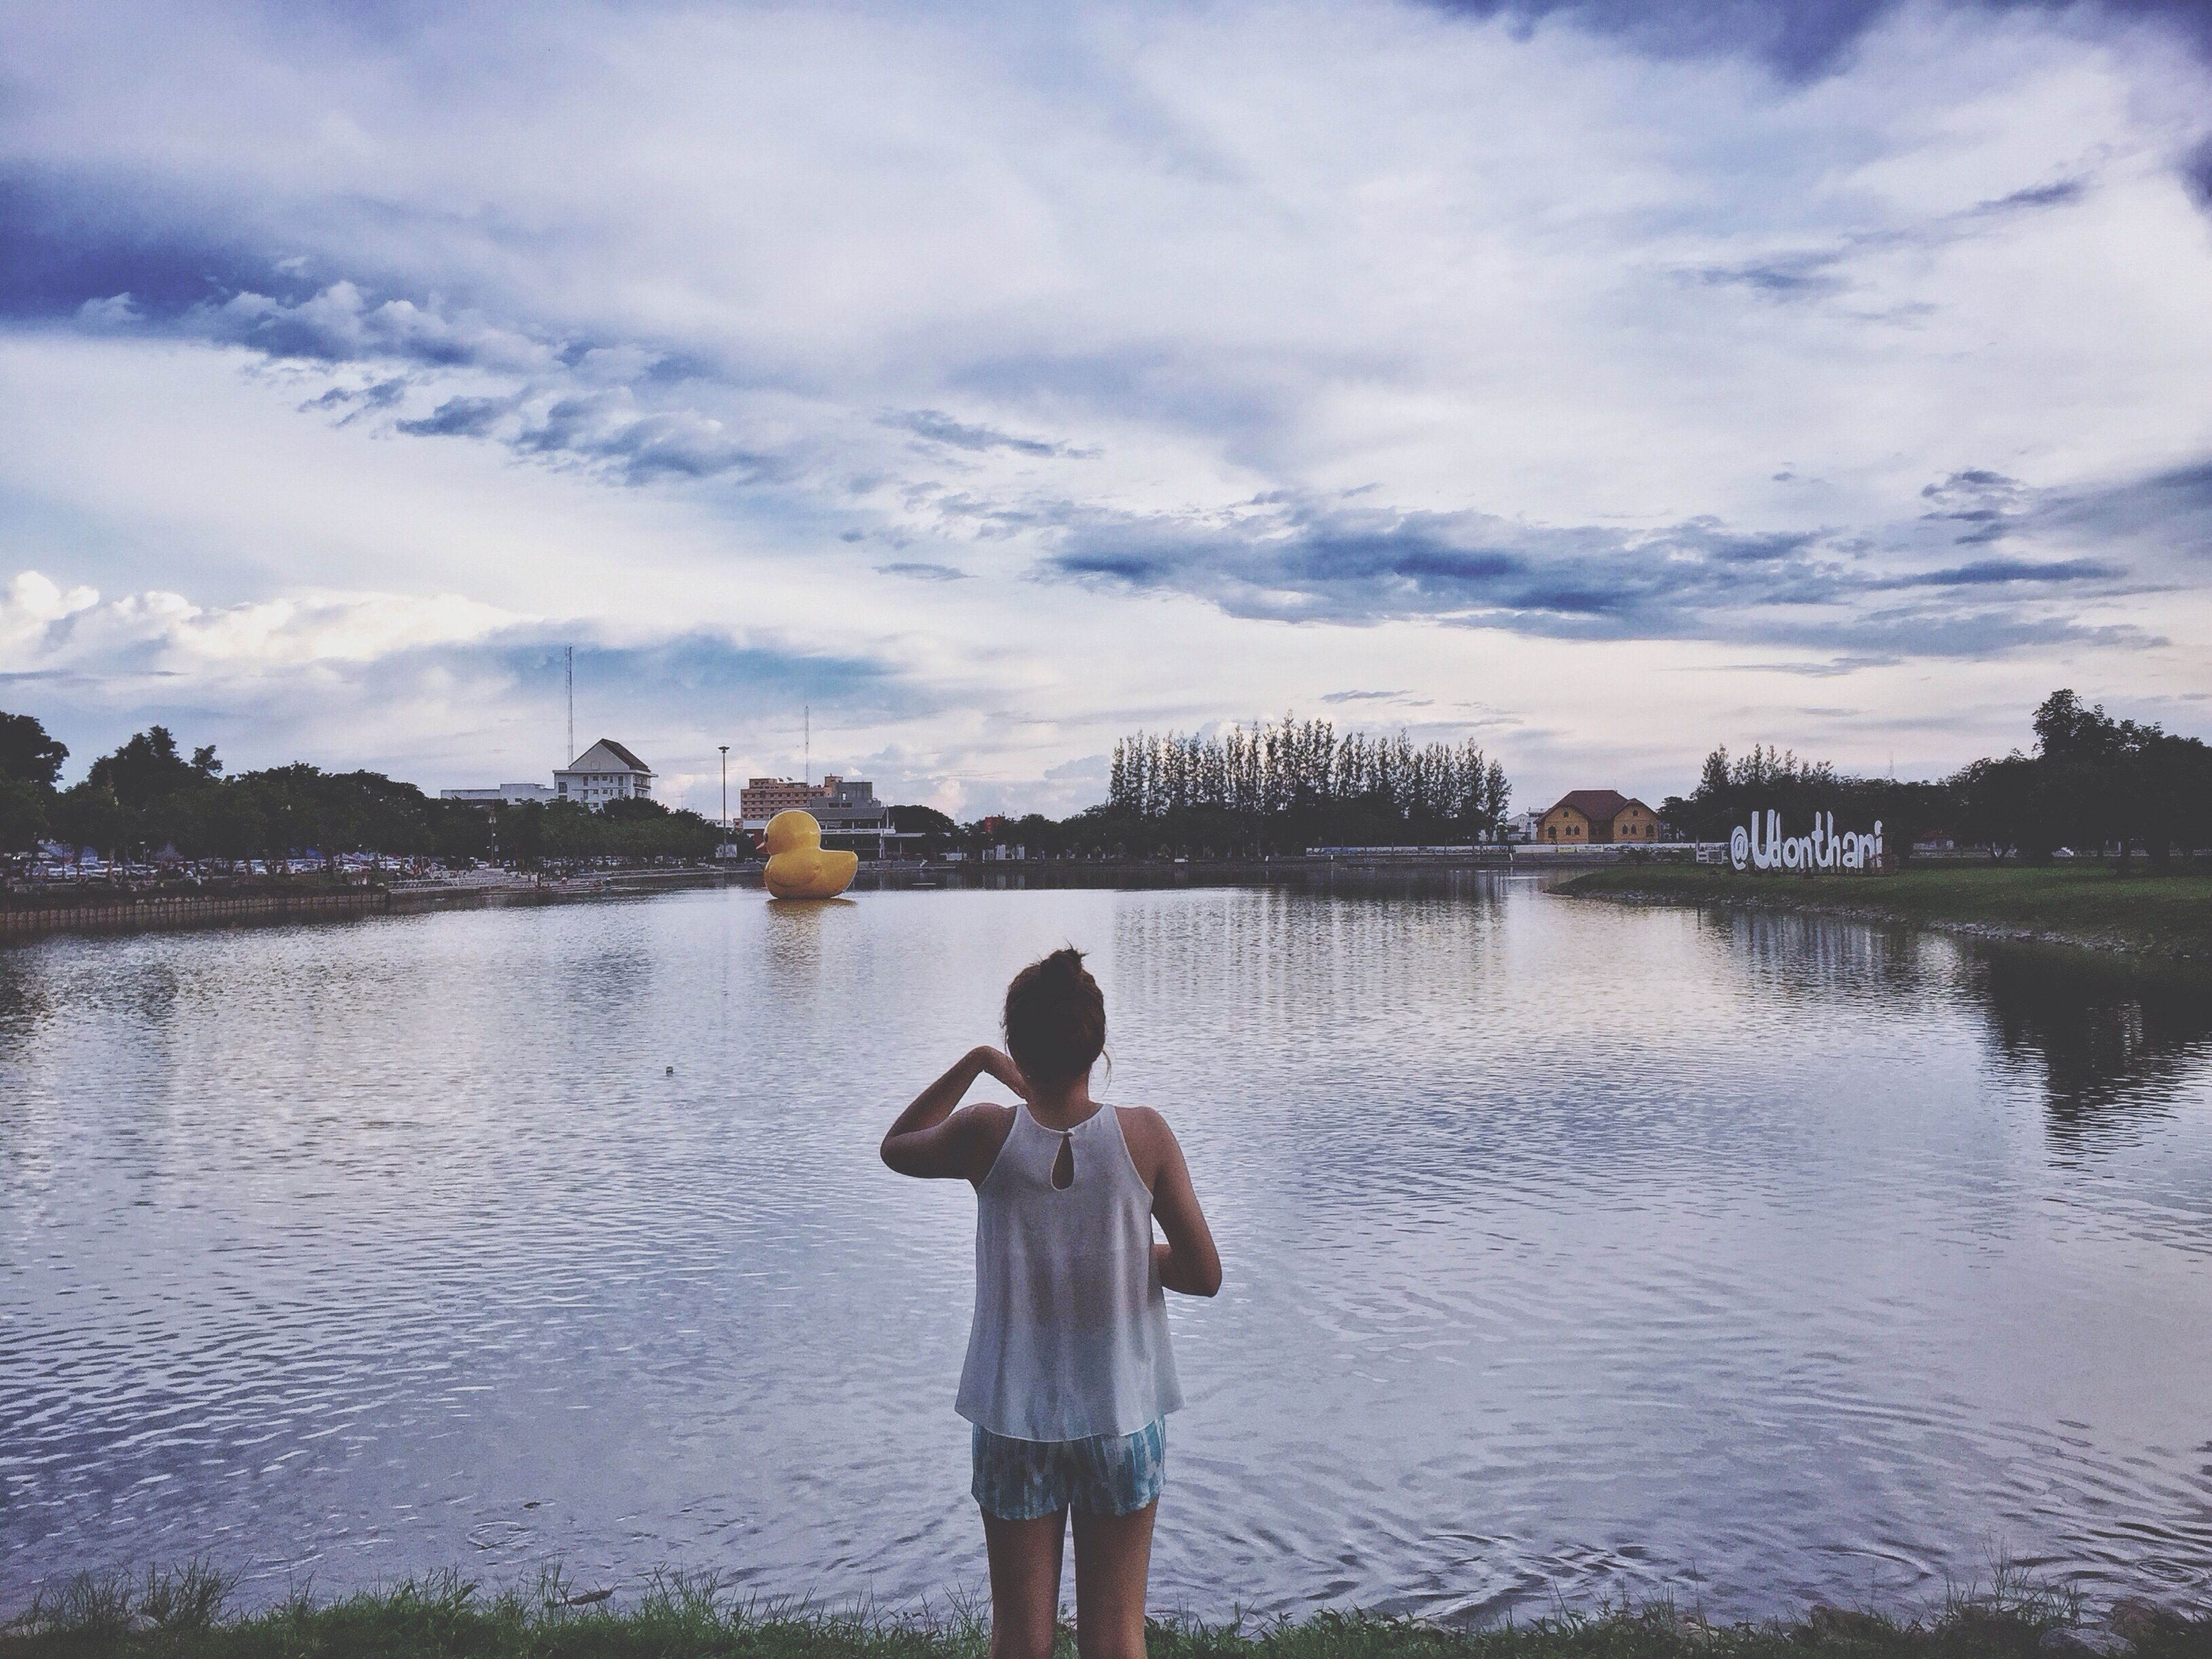 water, sky, lake, standing, lifestyles, leisure activity, casual clothing, cloud - sky, tranquility, nature, tranquil scene, cloud, scenics, beauty in nature, outdoors, lakeshore, day, idyllic